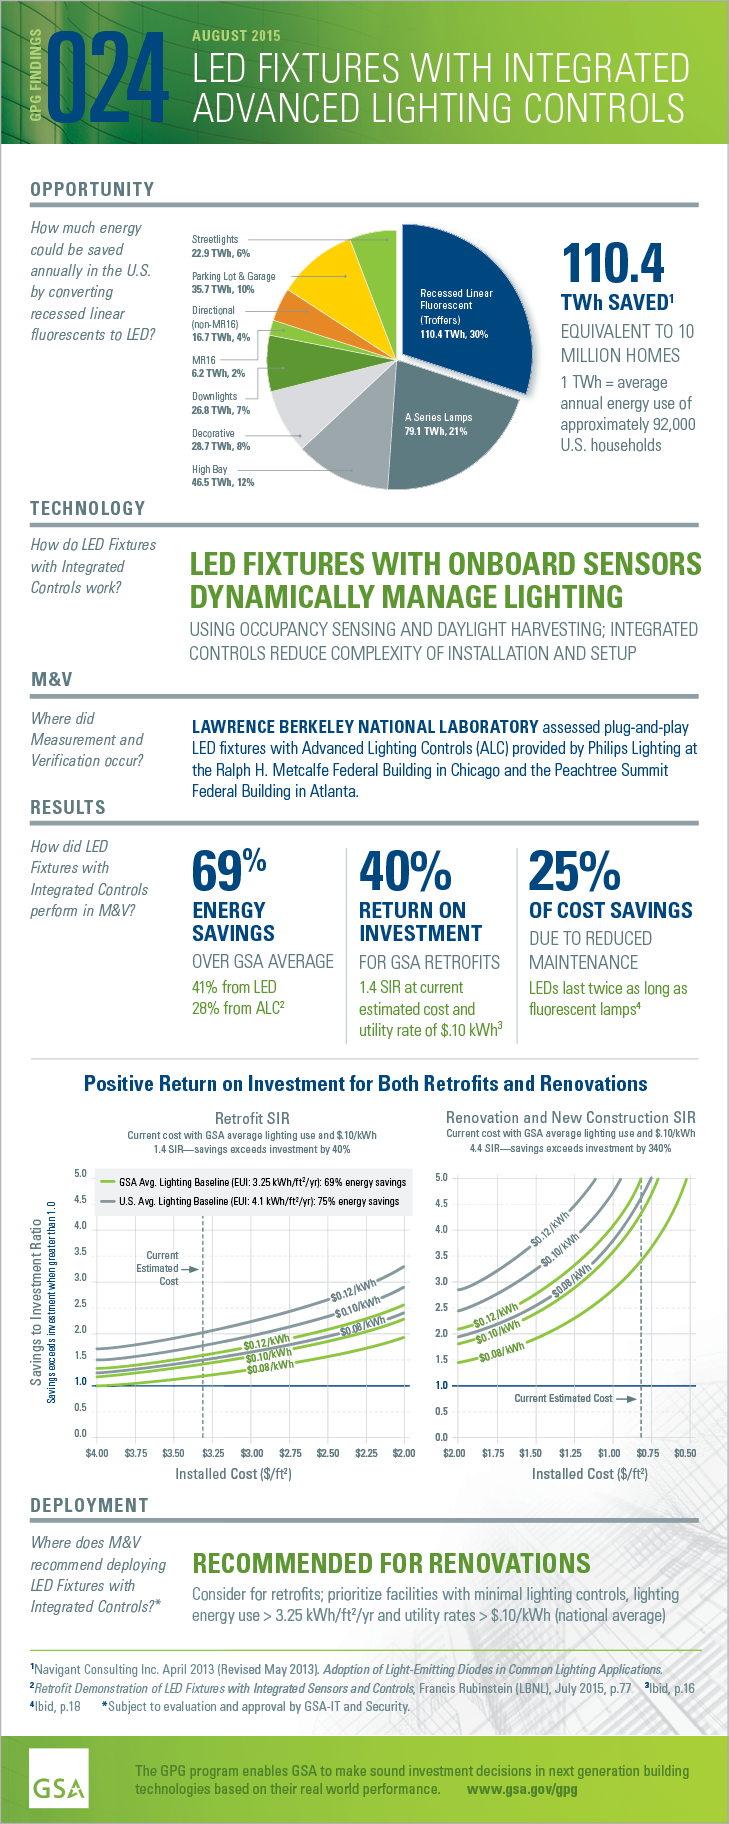 GPG Findings 024, August 2015, LED Fixtures with Integrated Advanced Lighting Controls. Opportunity: How much energycould be saved annually in the U.S. by converting recessed linear fluorescents to LED? 110.4TWh saved. Equivalent to 10 million homes. 1 TWh = average annual energy use of approximately 92,000 U.S. households. (Navigant Consulting Inc. April 2013 (Revised May 2013). Adoption of Light-Emitting Diodes in Common Lighting Applications) Technology: How do LED Fixtures with Integrated Lighting Controls work? LED FIXTURES WITH ONBOARD SENSORSDYNAMICALLY MANAGE LIGHTING USING OCCUPANCY SENSING AND DAYLIGHT HARVESTING; INTEGRATED CONTROLS REDUCE COMPLEXITY OF INSTALLATION AND SETUP. Measurement and Verification. Where did M and V occur? LAWRENCE BERKELEY NATIONAL LABORATORY assessed plug-and-play LED fixtures with Advanced Lighting Controls (ALC) at the Ralph H. Metcalfe Federal Building in Chicago and the Peachtree Summit Federal Building in Atlanta. Results: How did LED Fixtures with Integrated Controlsperform in M&V? 69% ENERGY SAVINGS OVER GSA AVERAGE: 41% from LED; 28% from ALC. (Retrofit Demonstration of LED Fixtures with Integrated Sensors and Controls, Francis Rubinstein (LBNL), July 2015, p.77). 40% RETURN ON INVESTMENT FOR GSA RETROFITS. 1.4 SIR at current estimated cost and utility rate of $.10 kWh (Ibid, p.18). 25% OF COST SAVINGS DUE TO REDUCED MAINTENANCE. LEDs last twice as long as fluorescent lamps (Ibid, p.18) Payback: Positive Return on Investment for Both Retrofits and Renovations. Retrofit SIR: Current cost with GSA average lighting use and $.10/kWh. 1.4 SIR—savings exceeds investment by 40%. Renovation and New Construction SIR: Current cost with GSA average lighting use and $.10/kWh. 4.4 SIR—savings exceeds investment by 340%. Deployment: RECOMMENDED FOR RENOVATIONS. Consider for retrofits; prioritize facilities with minimal lighting controls, lighting energy use > 3.25 kWh/ft2 and utility rates > $.10/kWh (national average). (Subject to evaluation and approval by GSA-IT and Security)